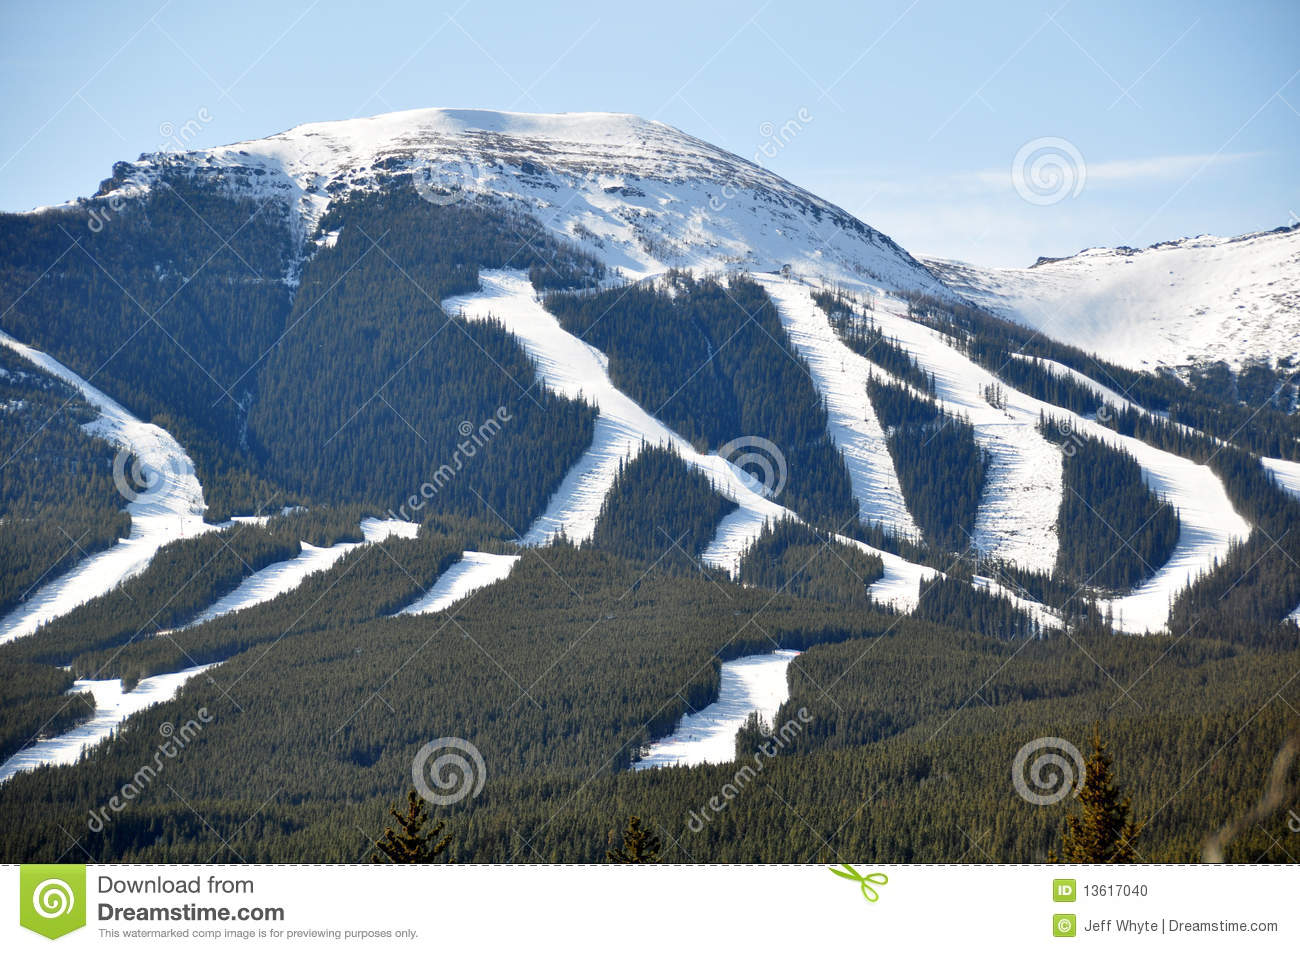 nakiska ski area stock photo. image of nature, area, mountains